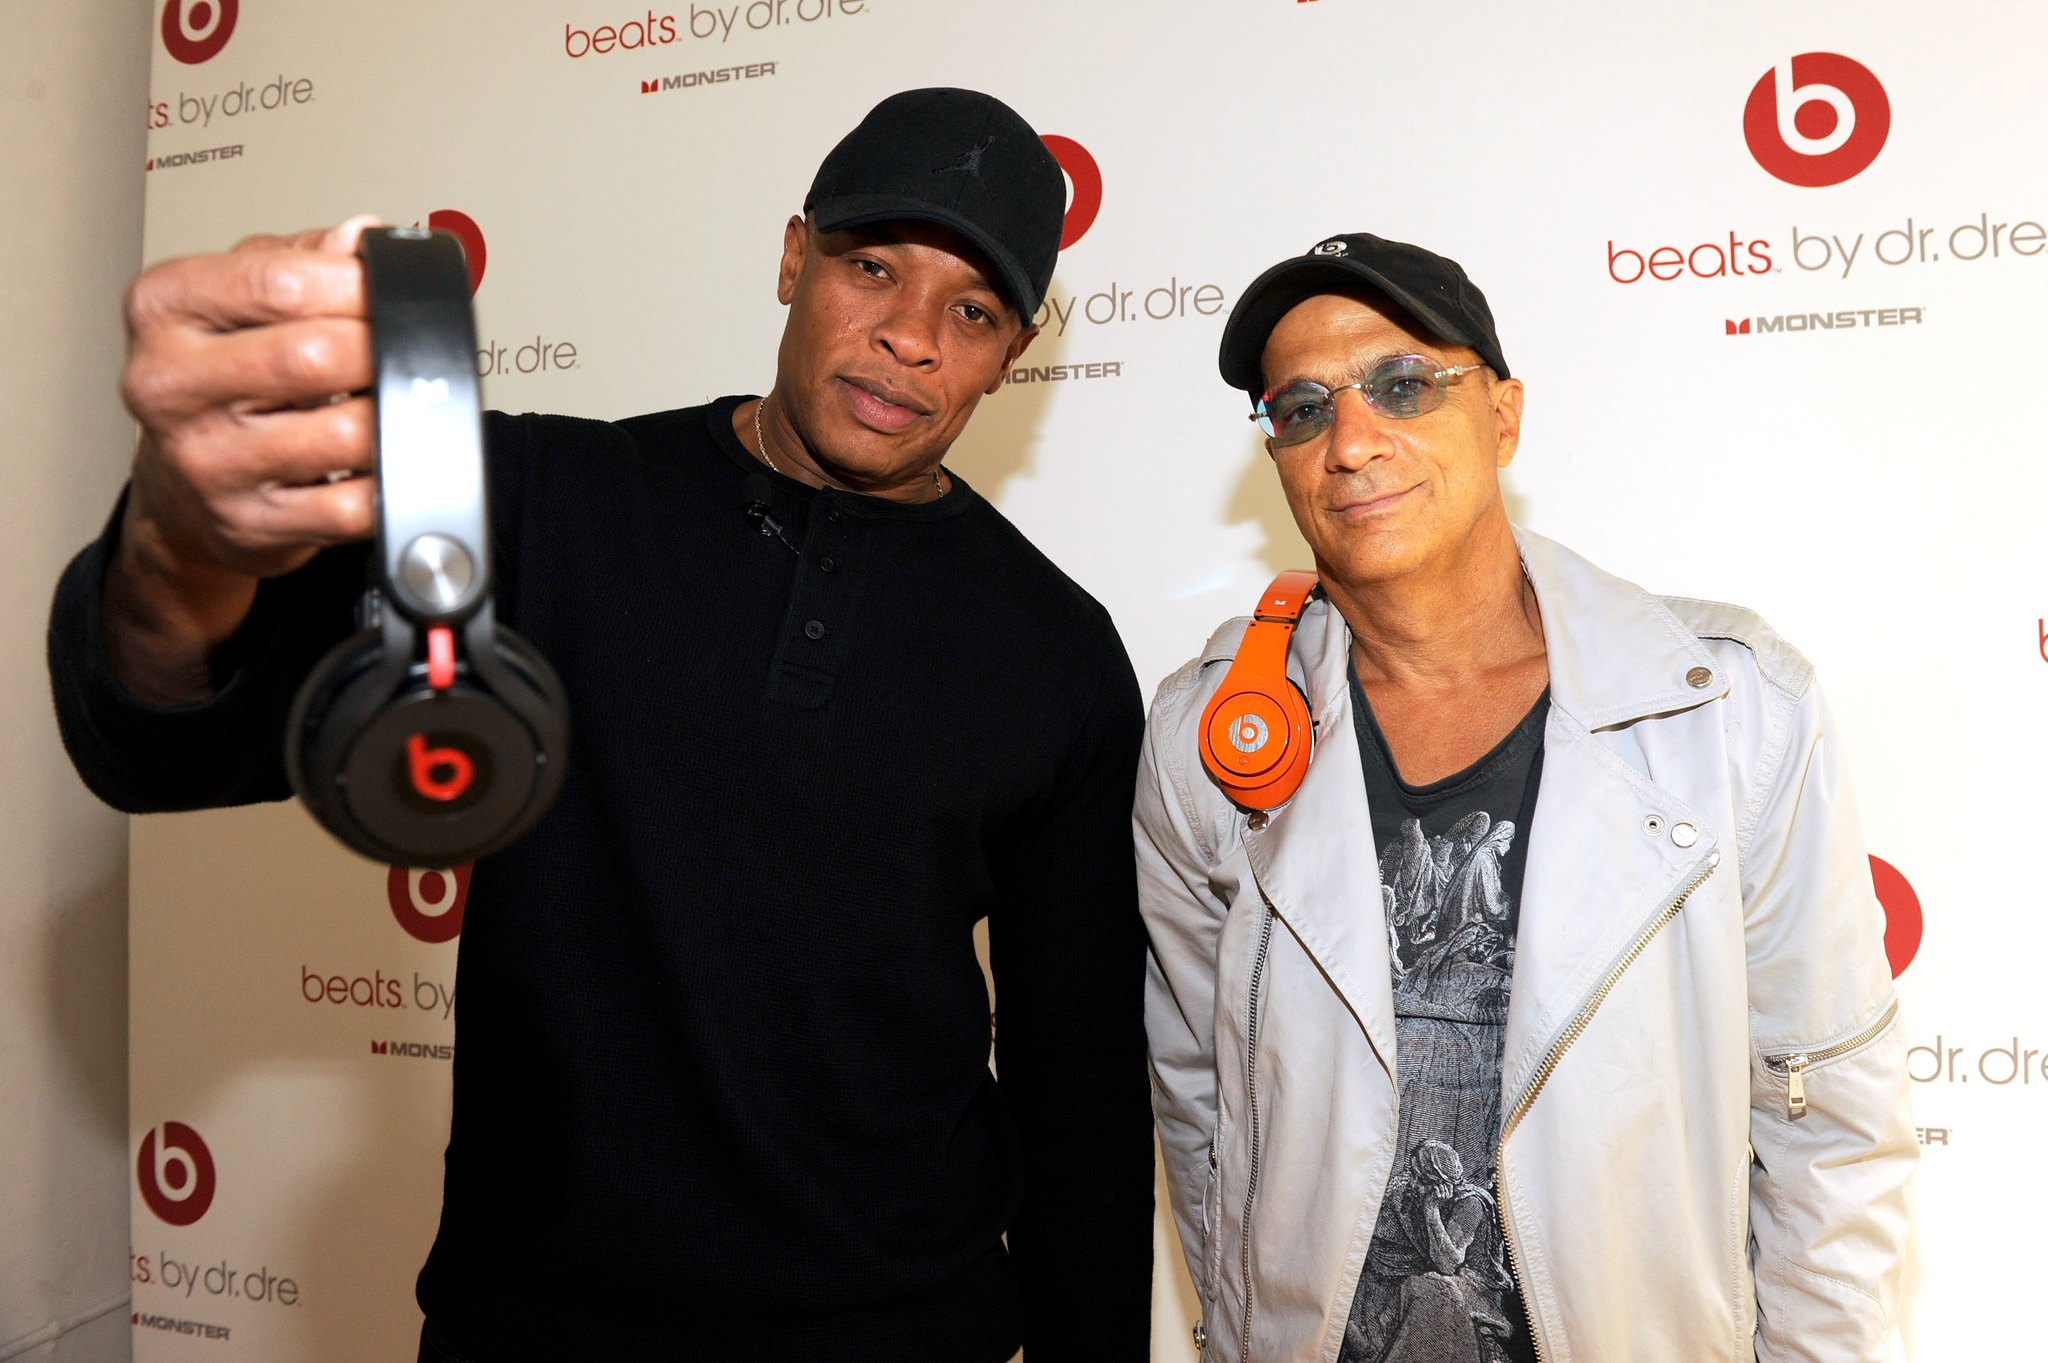 Apple Buys Beats By Dre, Beats Electronics, For $3 Billion